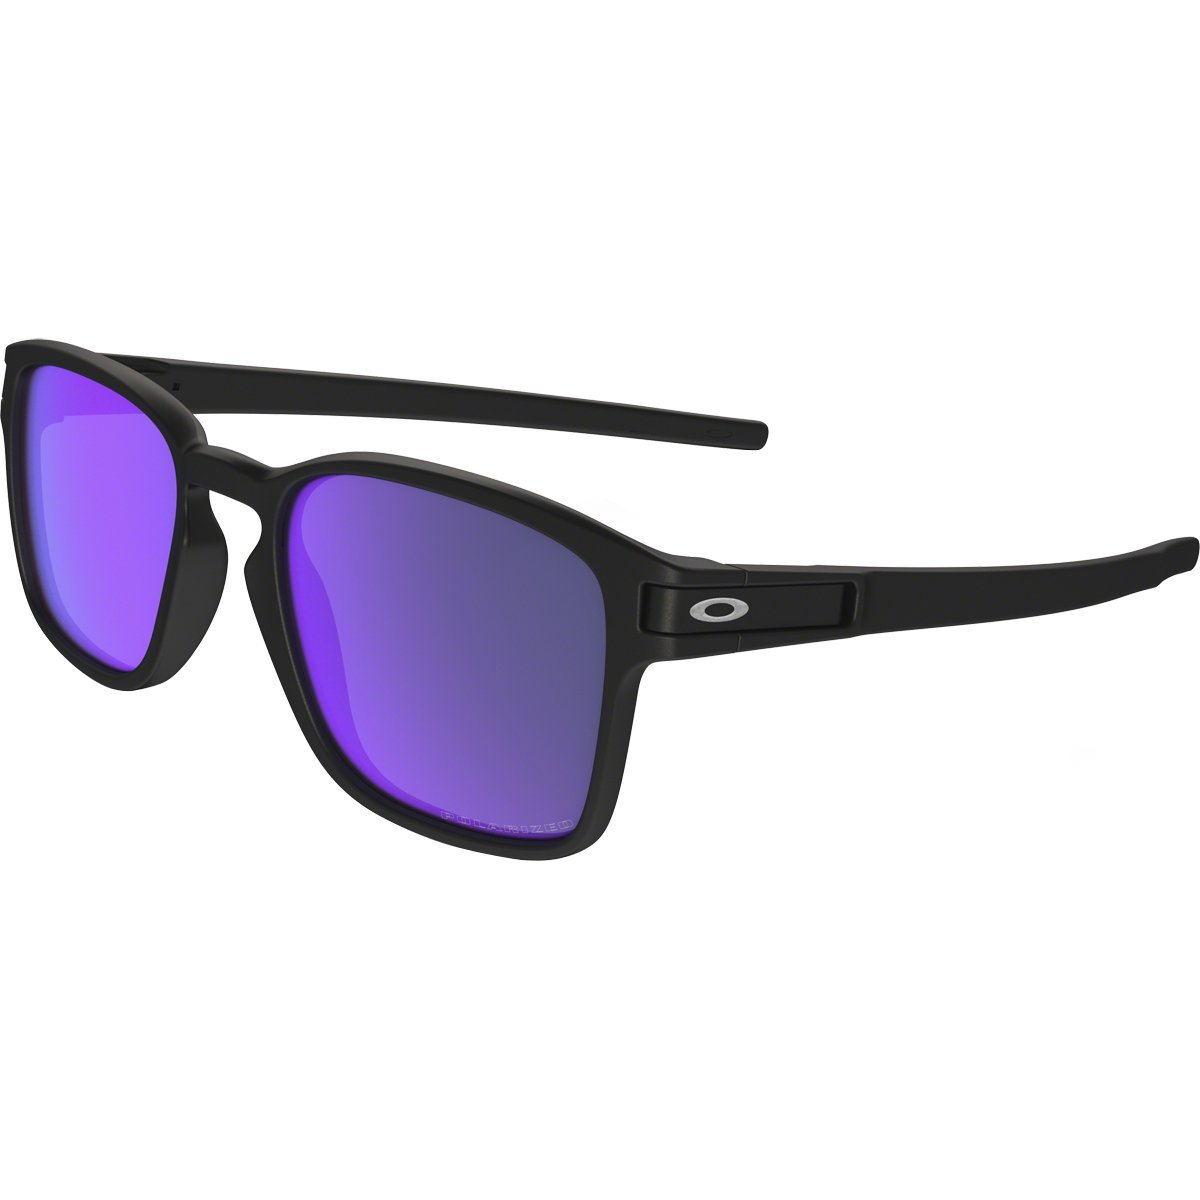 Oakley Men's Latch Squared Polarized Iridium Rectangular Sunglasses, Matte Black w/Violet Iridium Polar, 52 mm